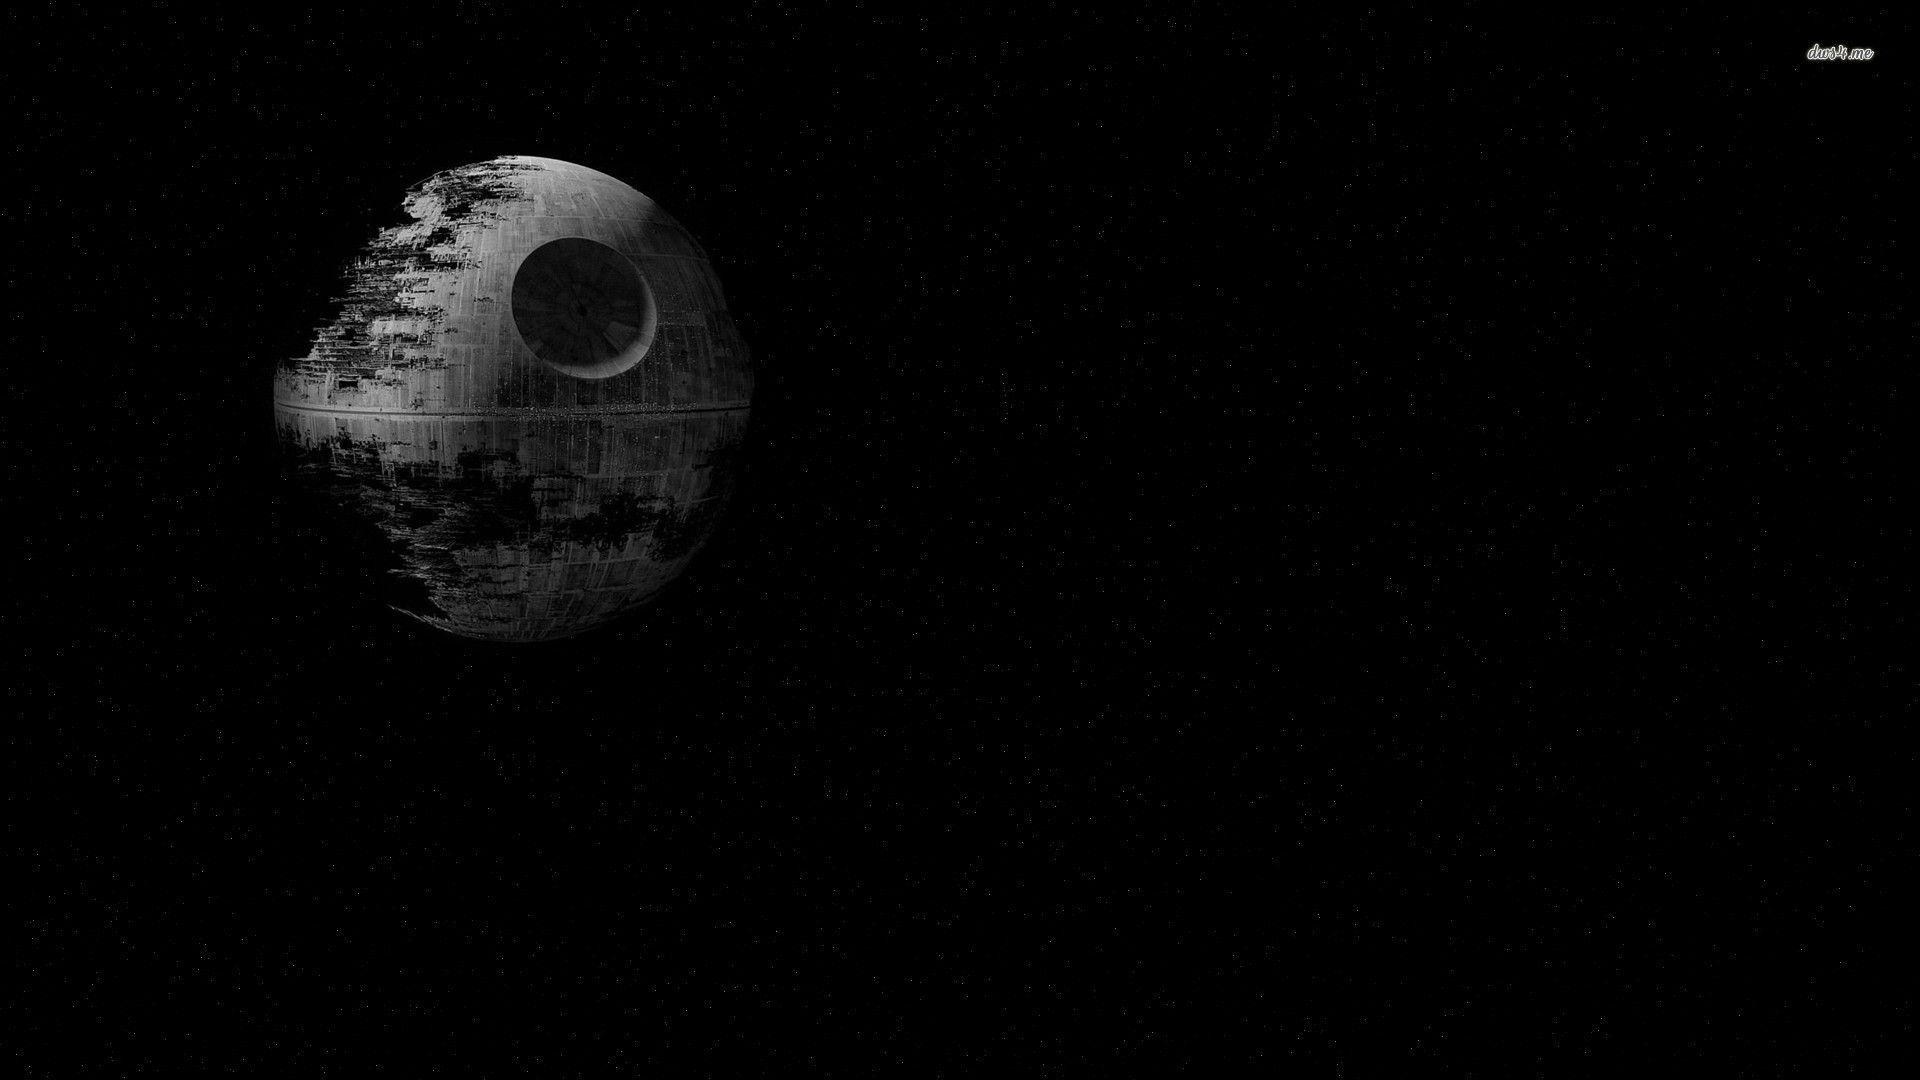 death star backgrounds - wallpaper cave